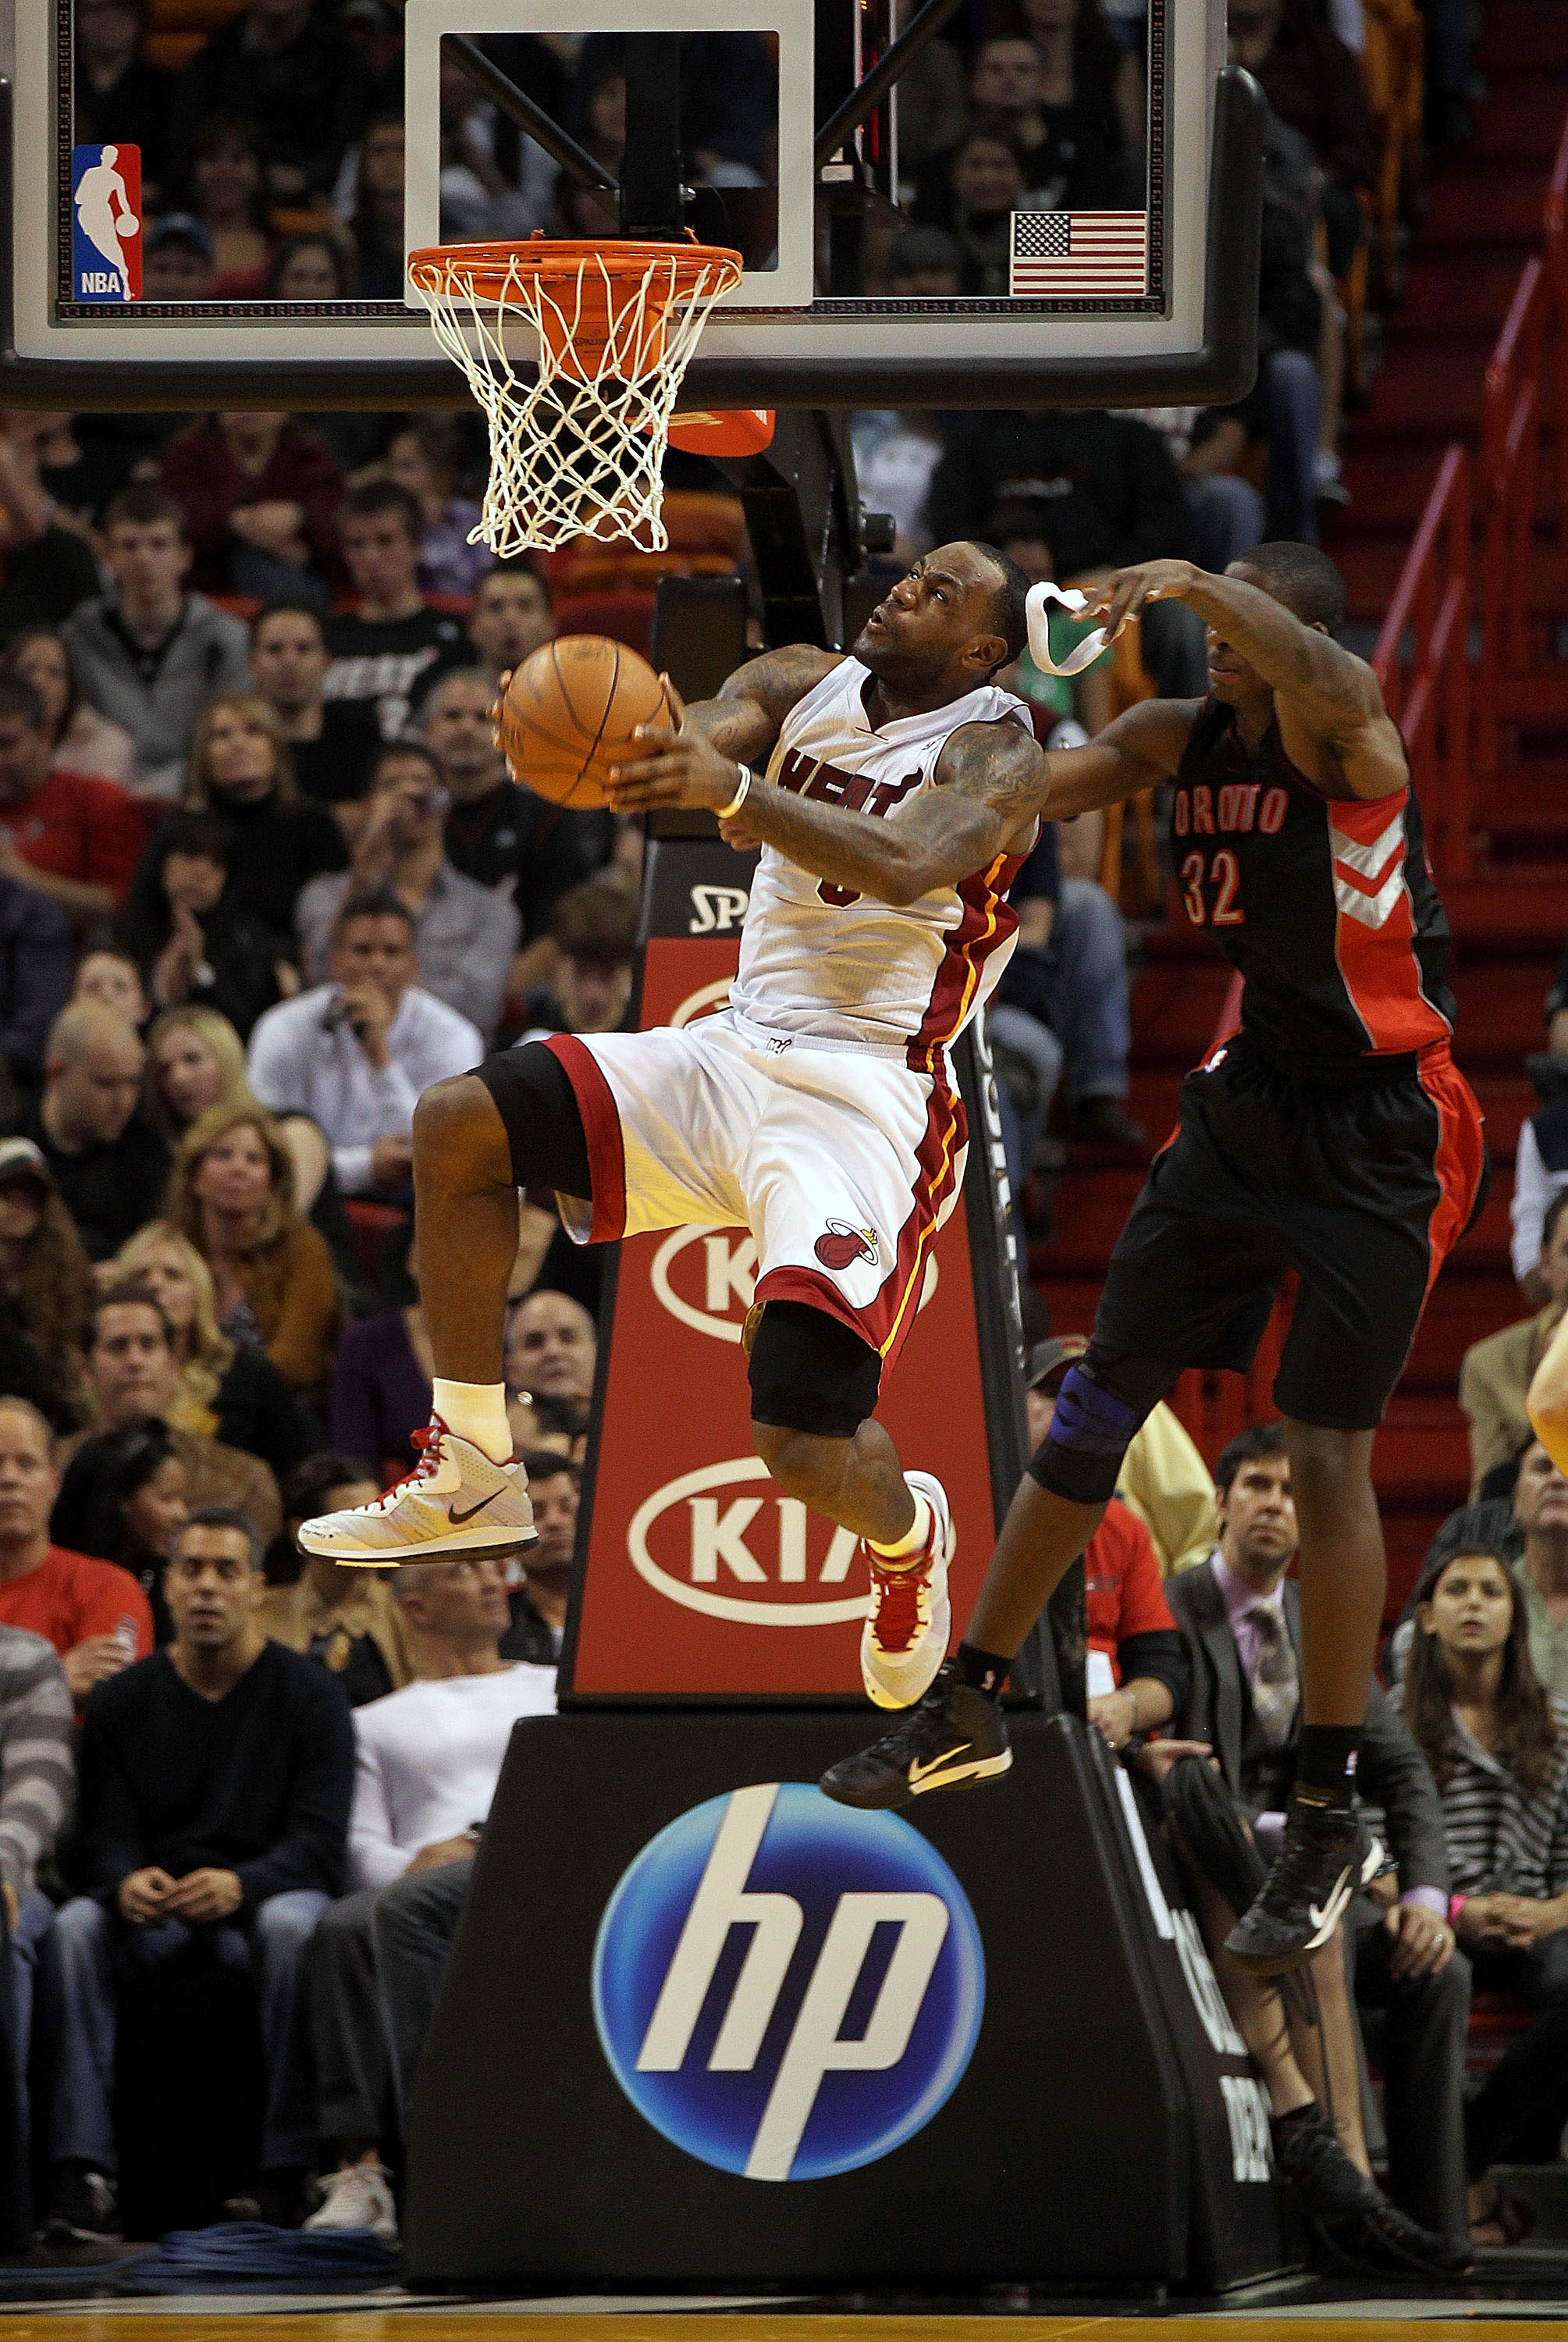 MIAMI, FL - JANUARY 22:  LeBron James #6 of the Miami Heat is fouled by Ed Davis #32 of the Toronto Raptors during a game  at American Airlines Arena on January 22, 2011 in Miami, Florida. NOTE TO USER: User expressly acknowledges and agrees that, by down